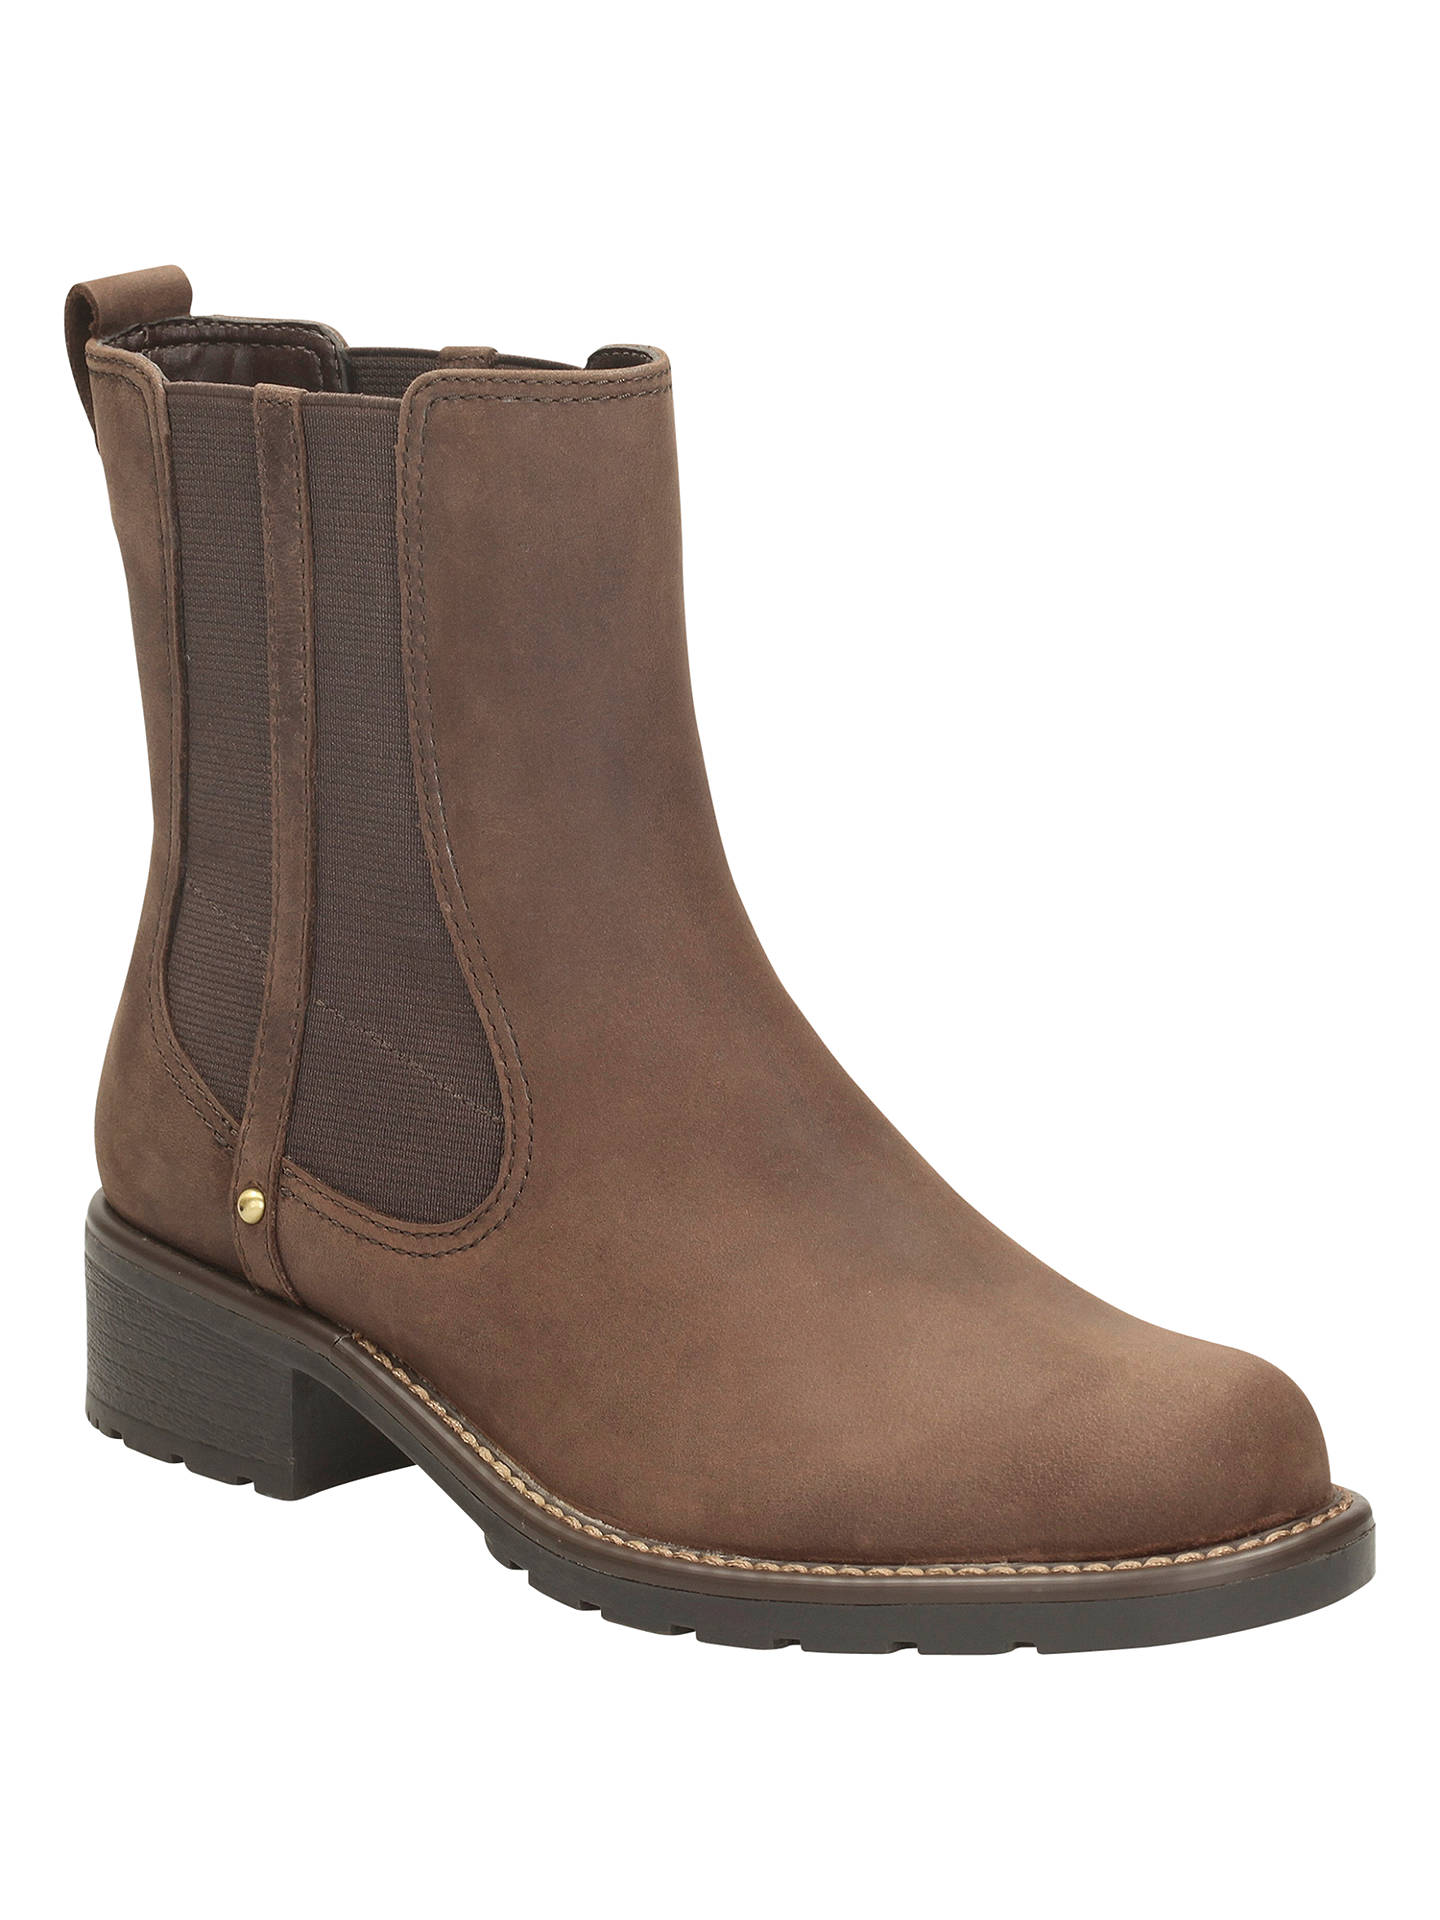 5241b680bb559 Clarks Orinoco Club Leather Ankle Boots at John Lewis   Partners